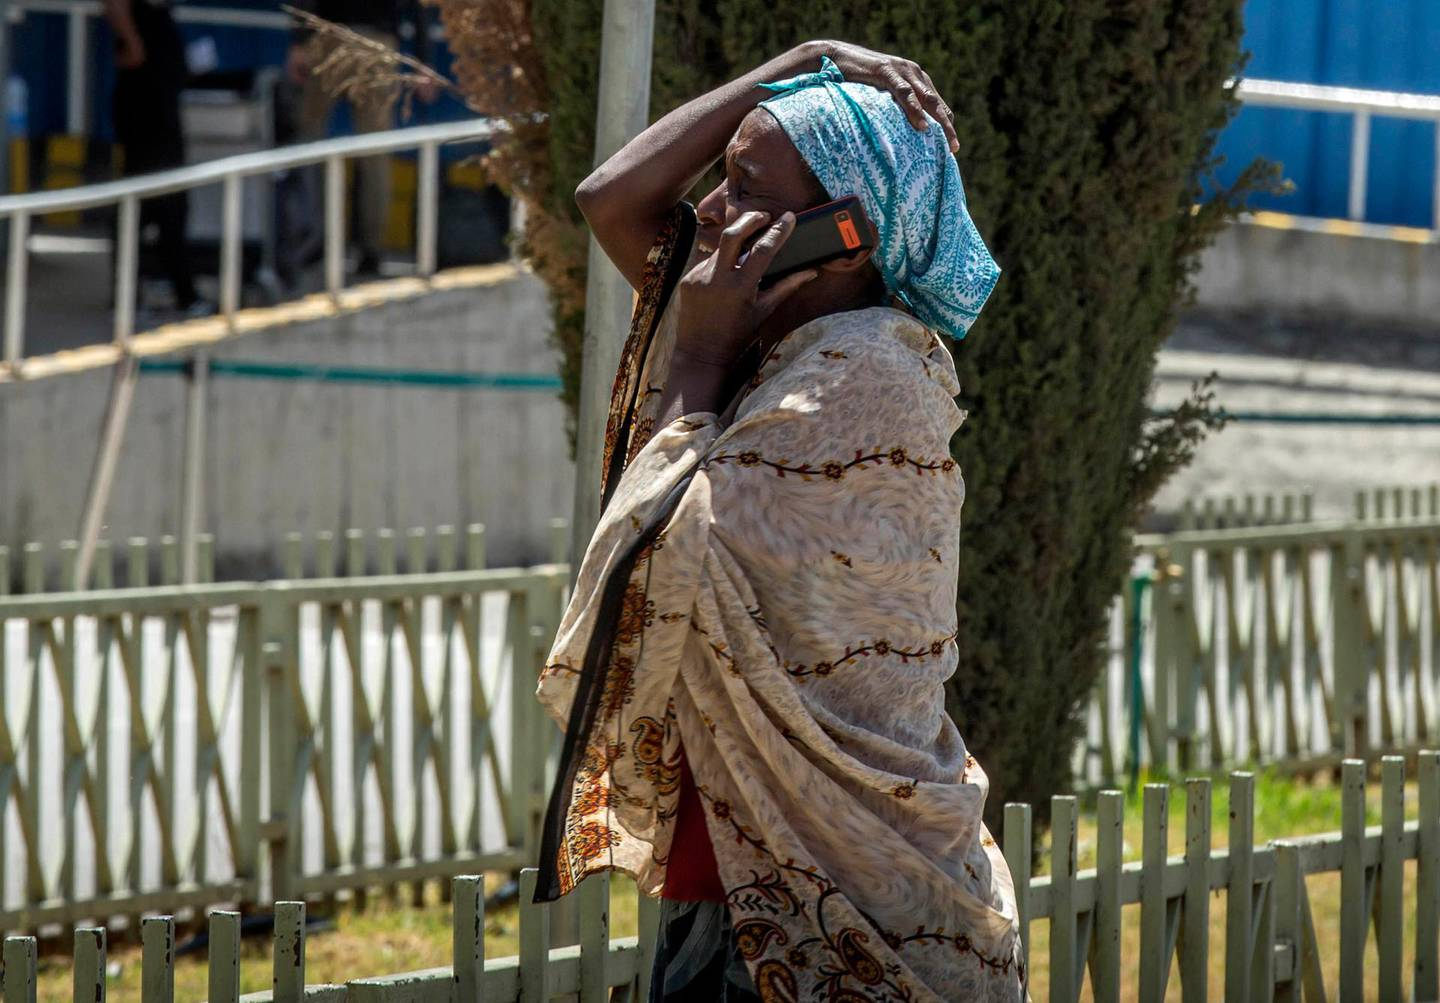 A family member of a victim involved in a plane crash talks on a mobile phone at Addis Ababa international airport Sunday, March 10, 2019. An Ethiopian Airlines flight crashed shortly after takeoff from Ethiopia's capital on Sunday morning, killing all 157 people thought to be on board, the airline and state broadcaster said, as anxious families rushed to airports in Addis Ababa and the destination, Nairobi. (AP Photo/Mulugeta Ayene)